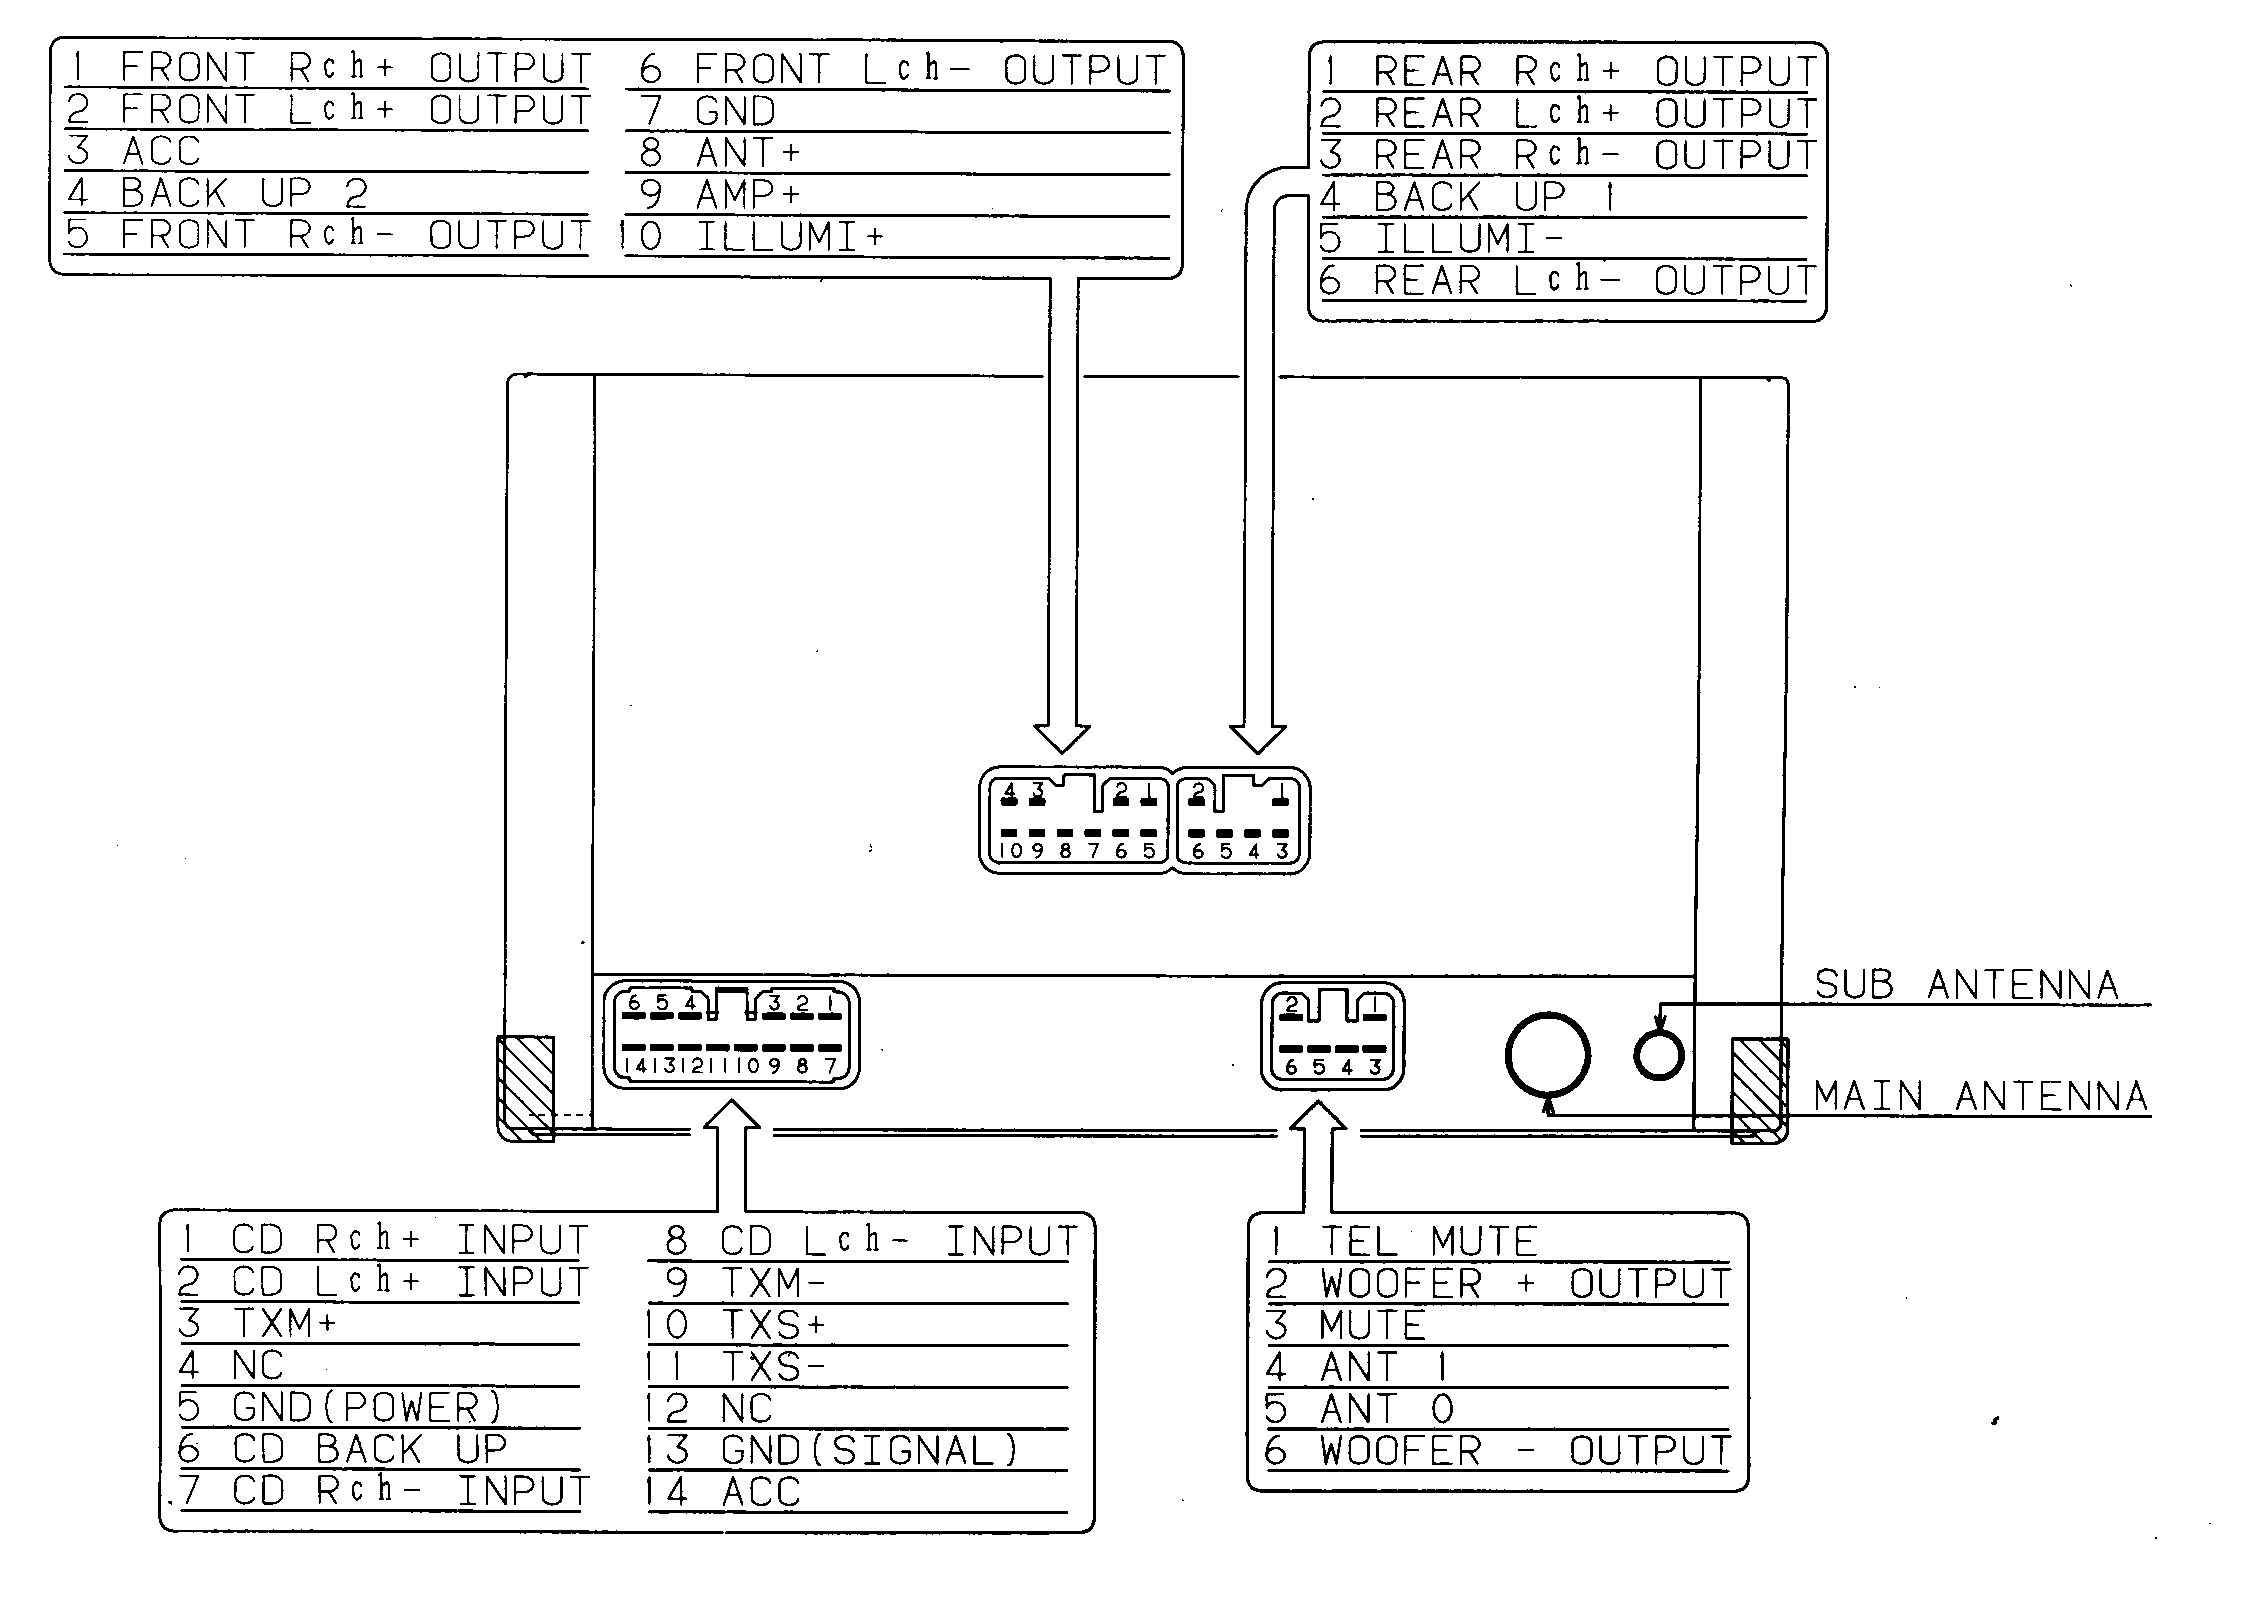 WireHarnessLexus121001 gs300 wiring diagram coleman furnace wiring diagram \u2022 free wiring  at bayanpartner.co